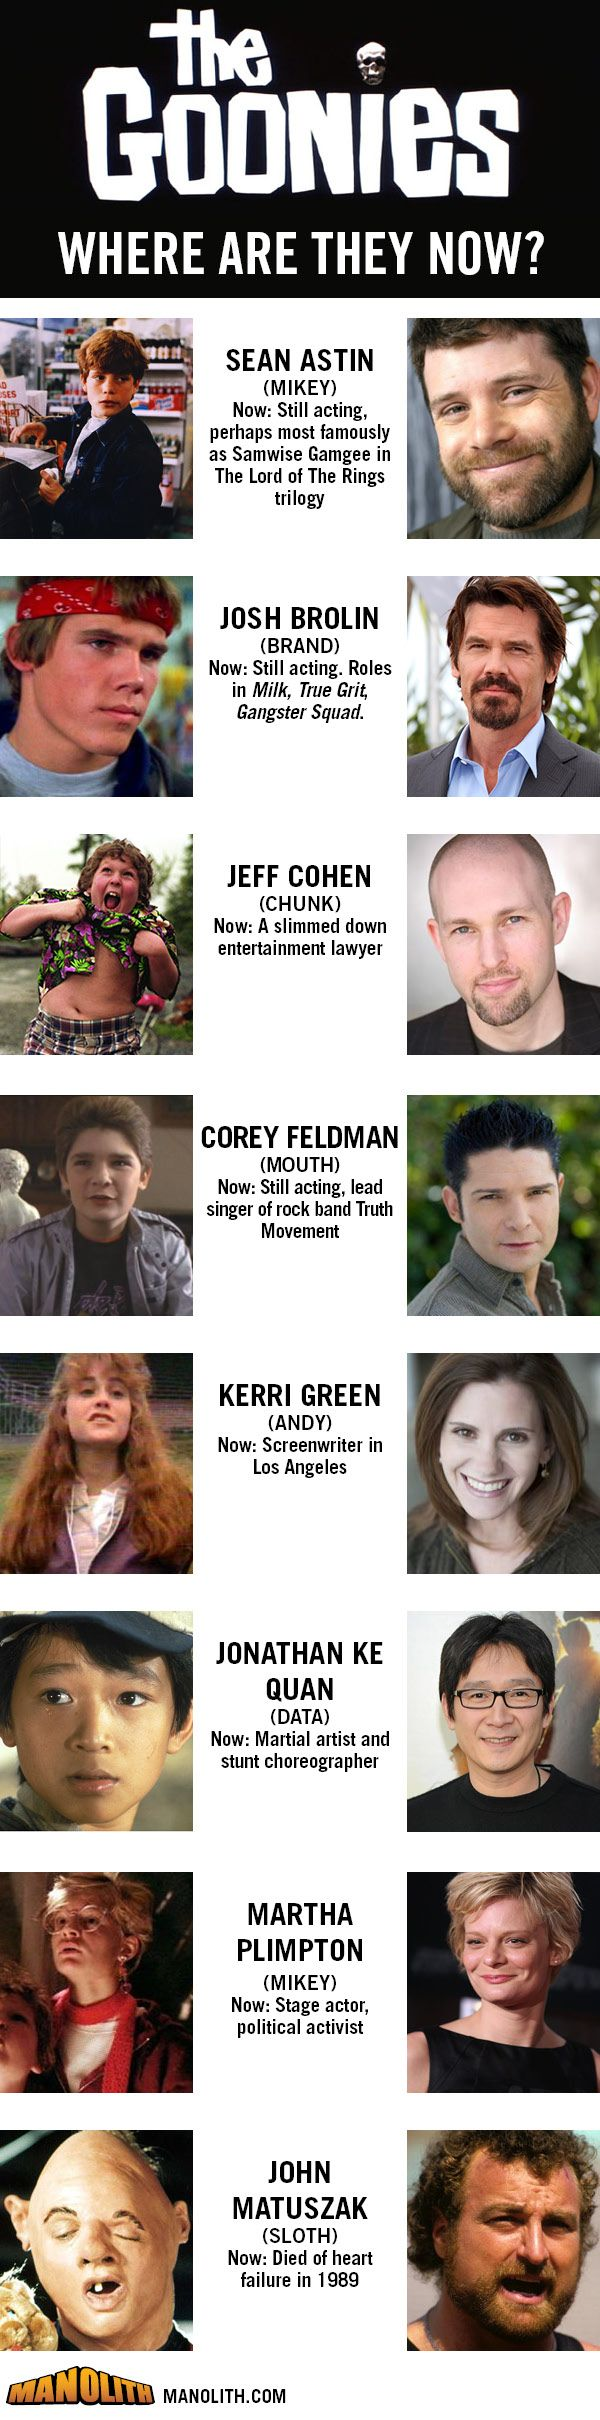 Ever wonder where the cast of the Goonies went? 28 years later, we catch up with the cast of The Goonies and see what they're up to.